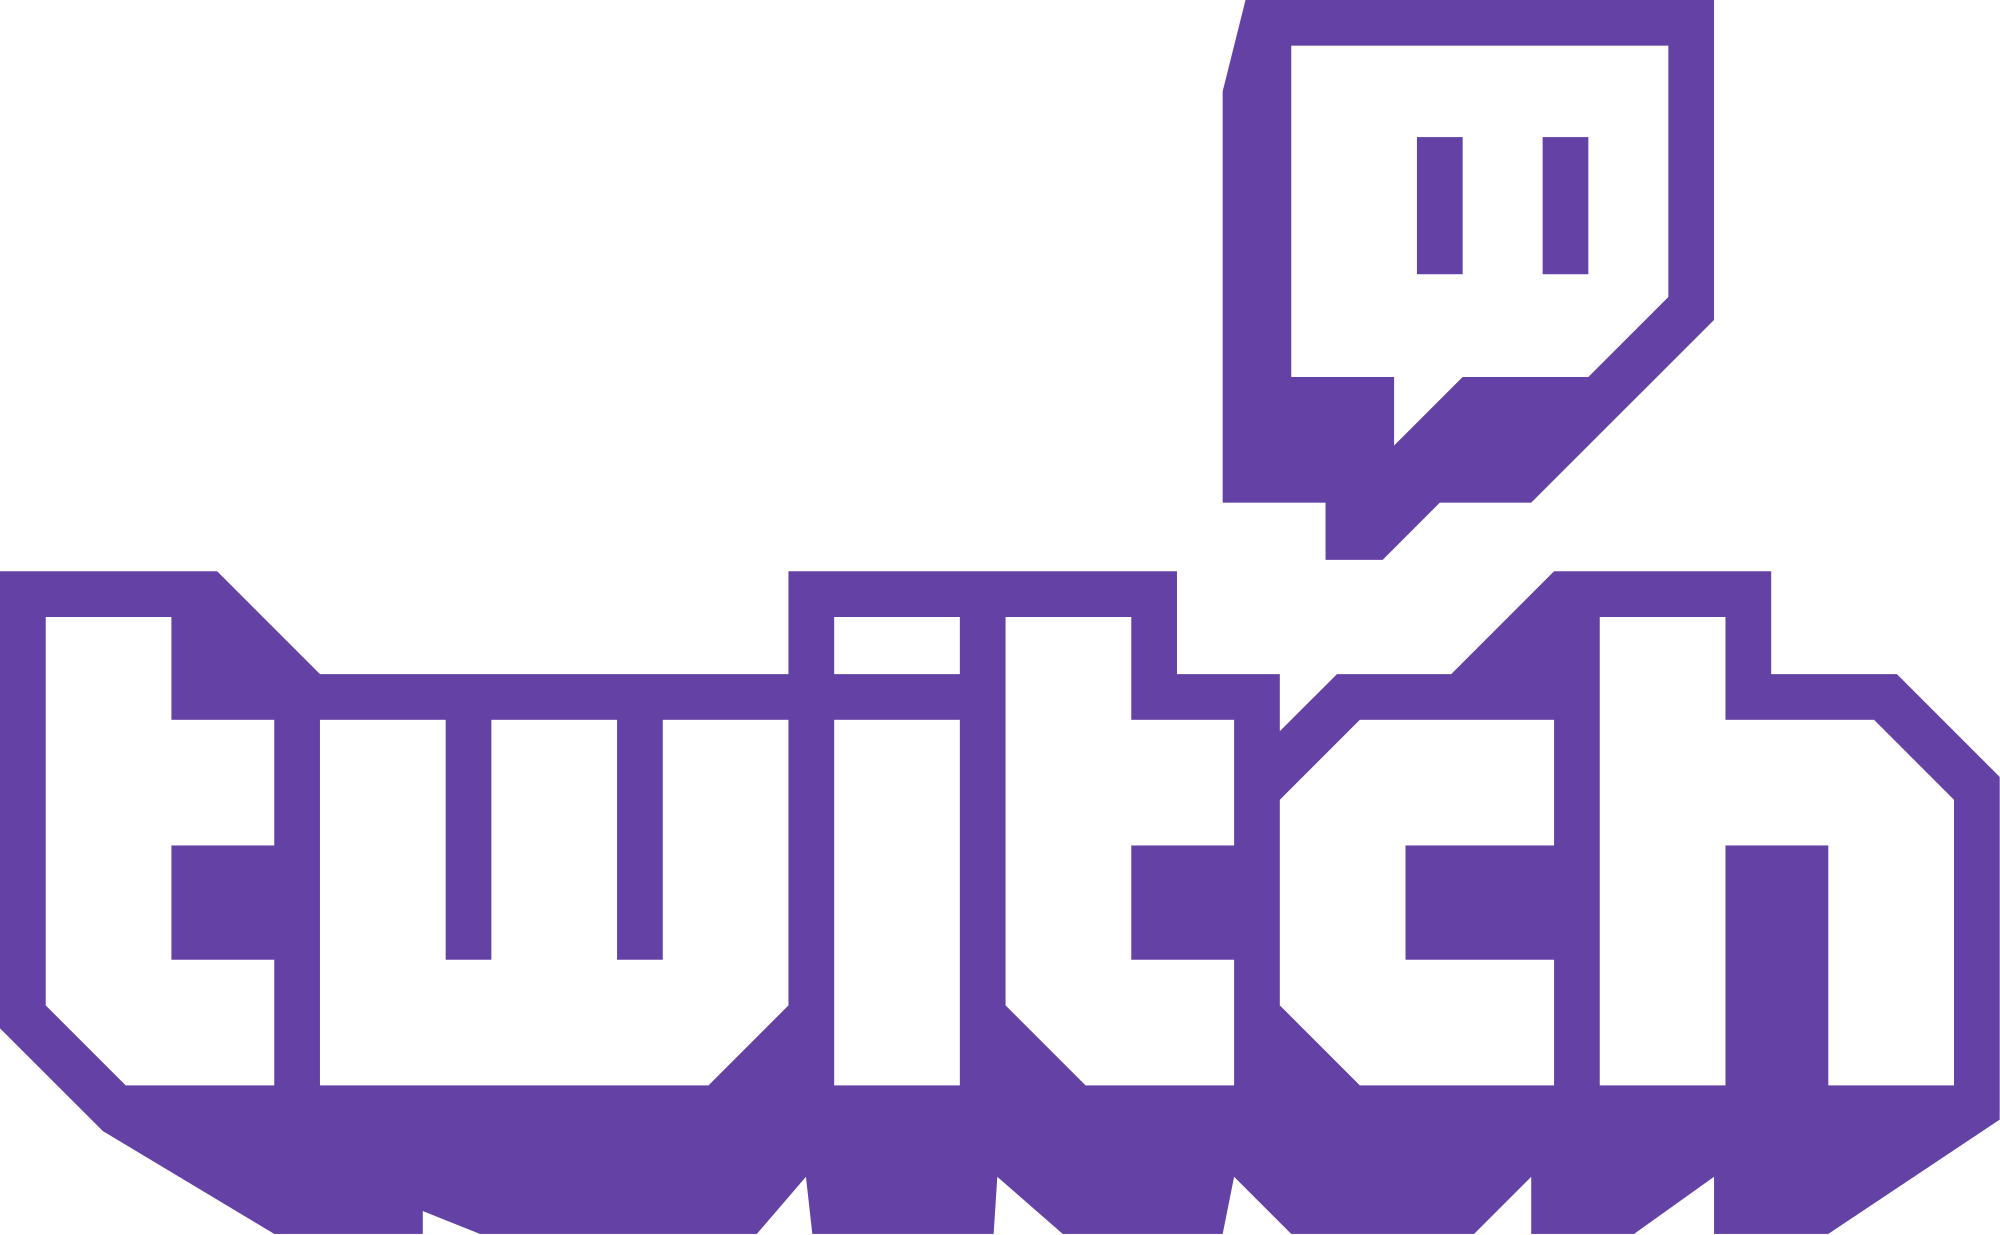 Twitch Logo Eps PNG - 101253